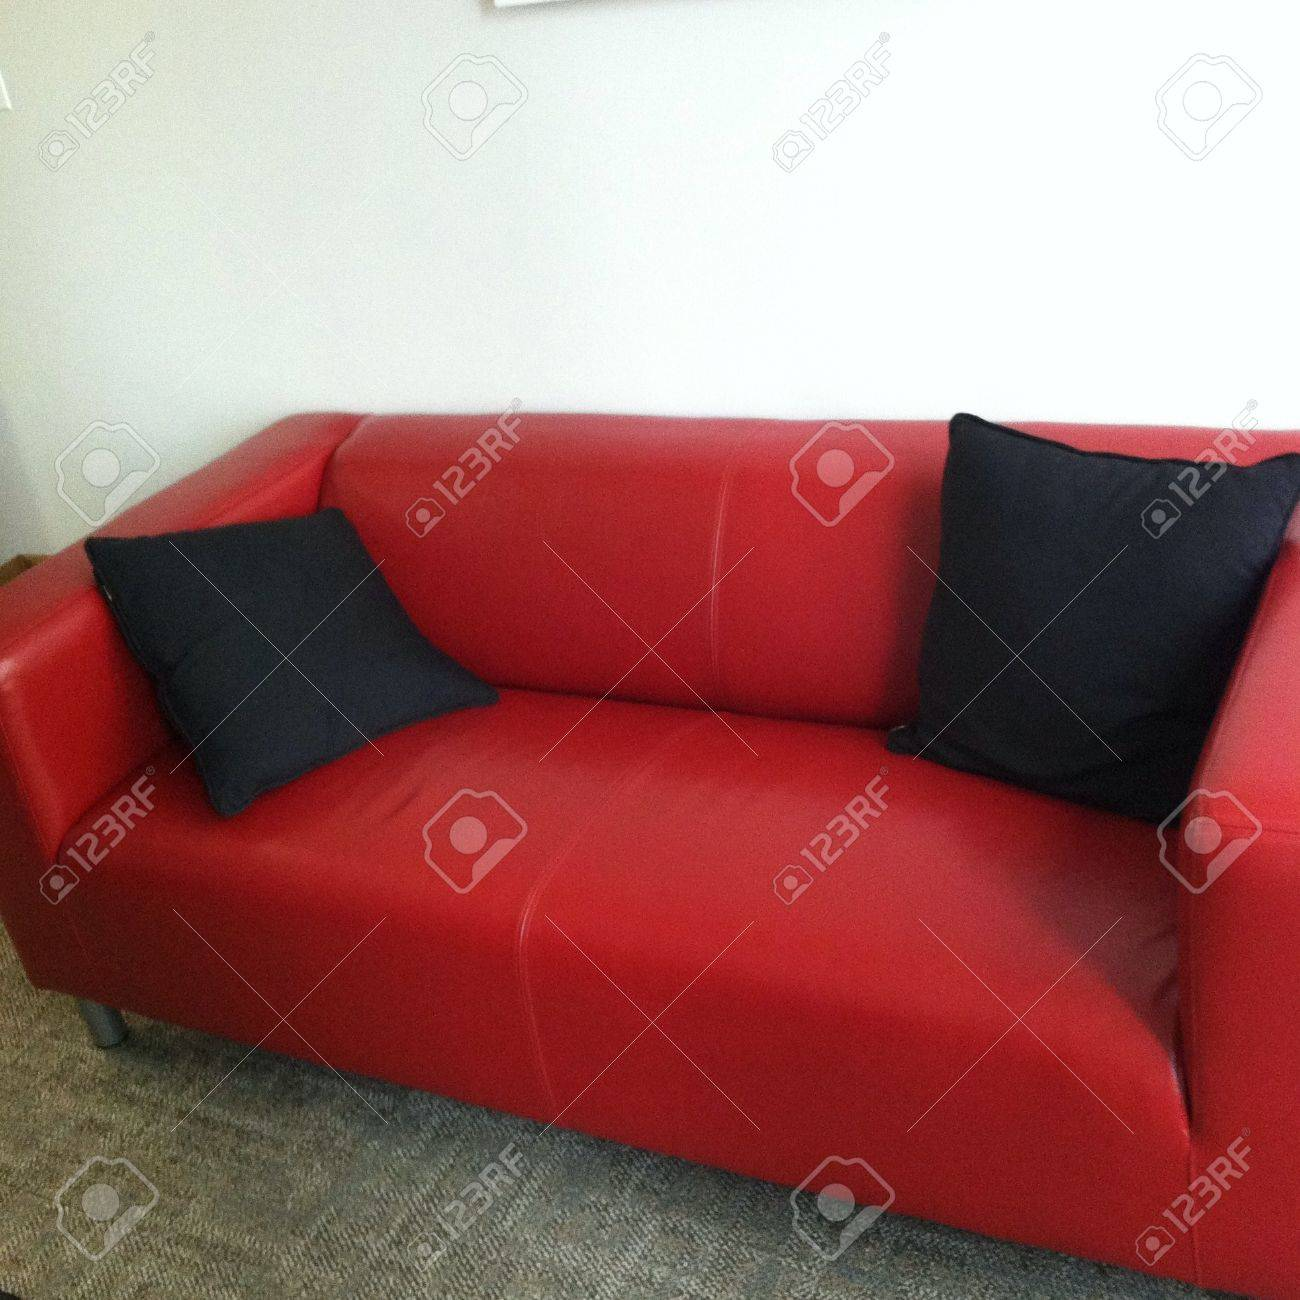 Red Couch With Black Pillows Stock Photo, Picture And Royalty Free ...